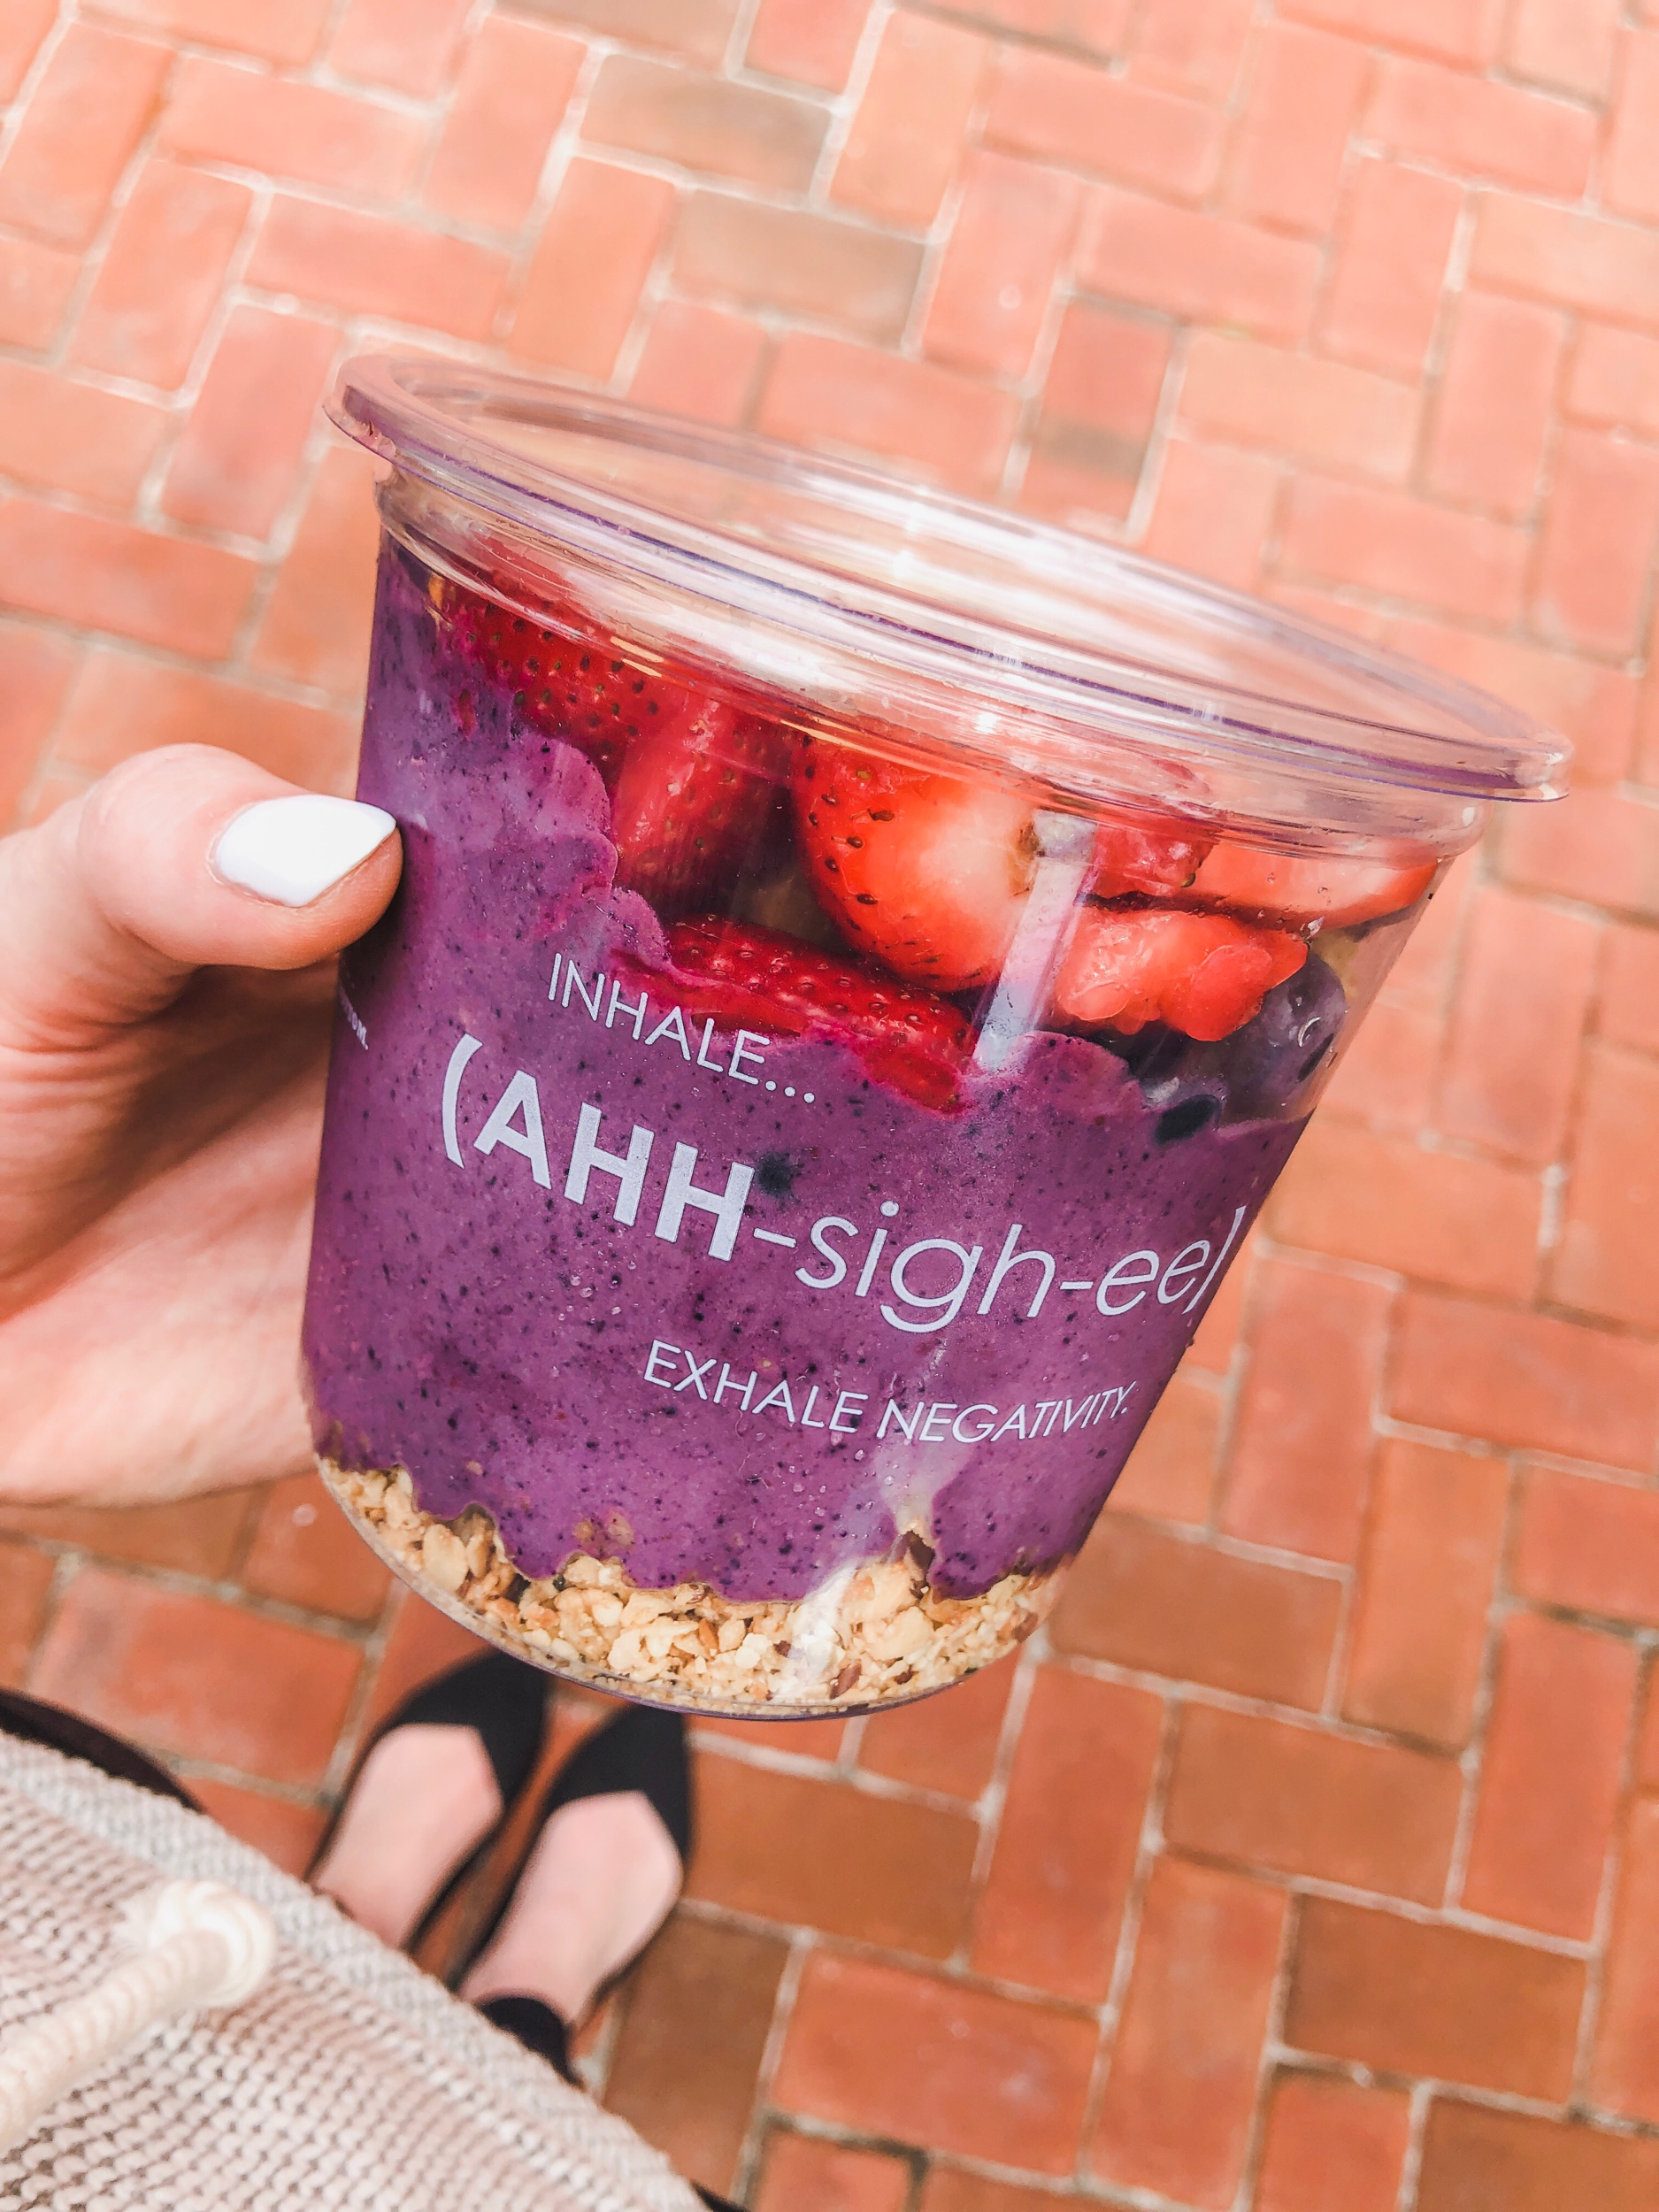 This warm weather just makes me want cold fruit and cold salads, so I could happily eat a smoothie bowl from SouthBlock every day.